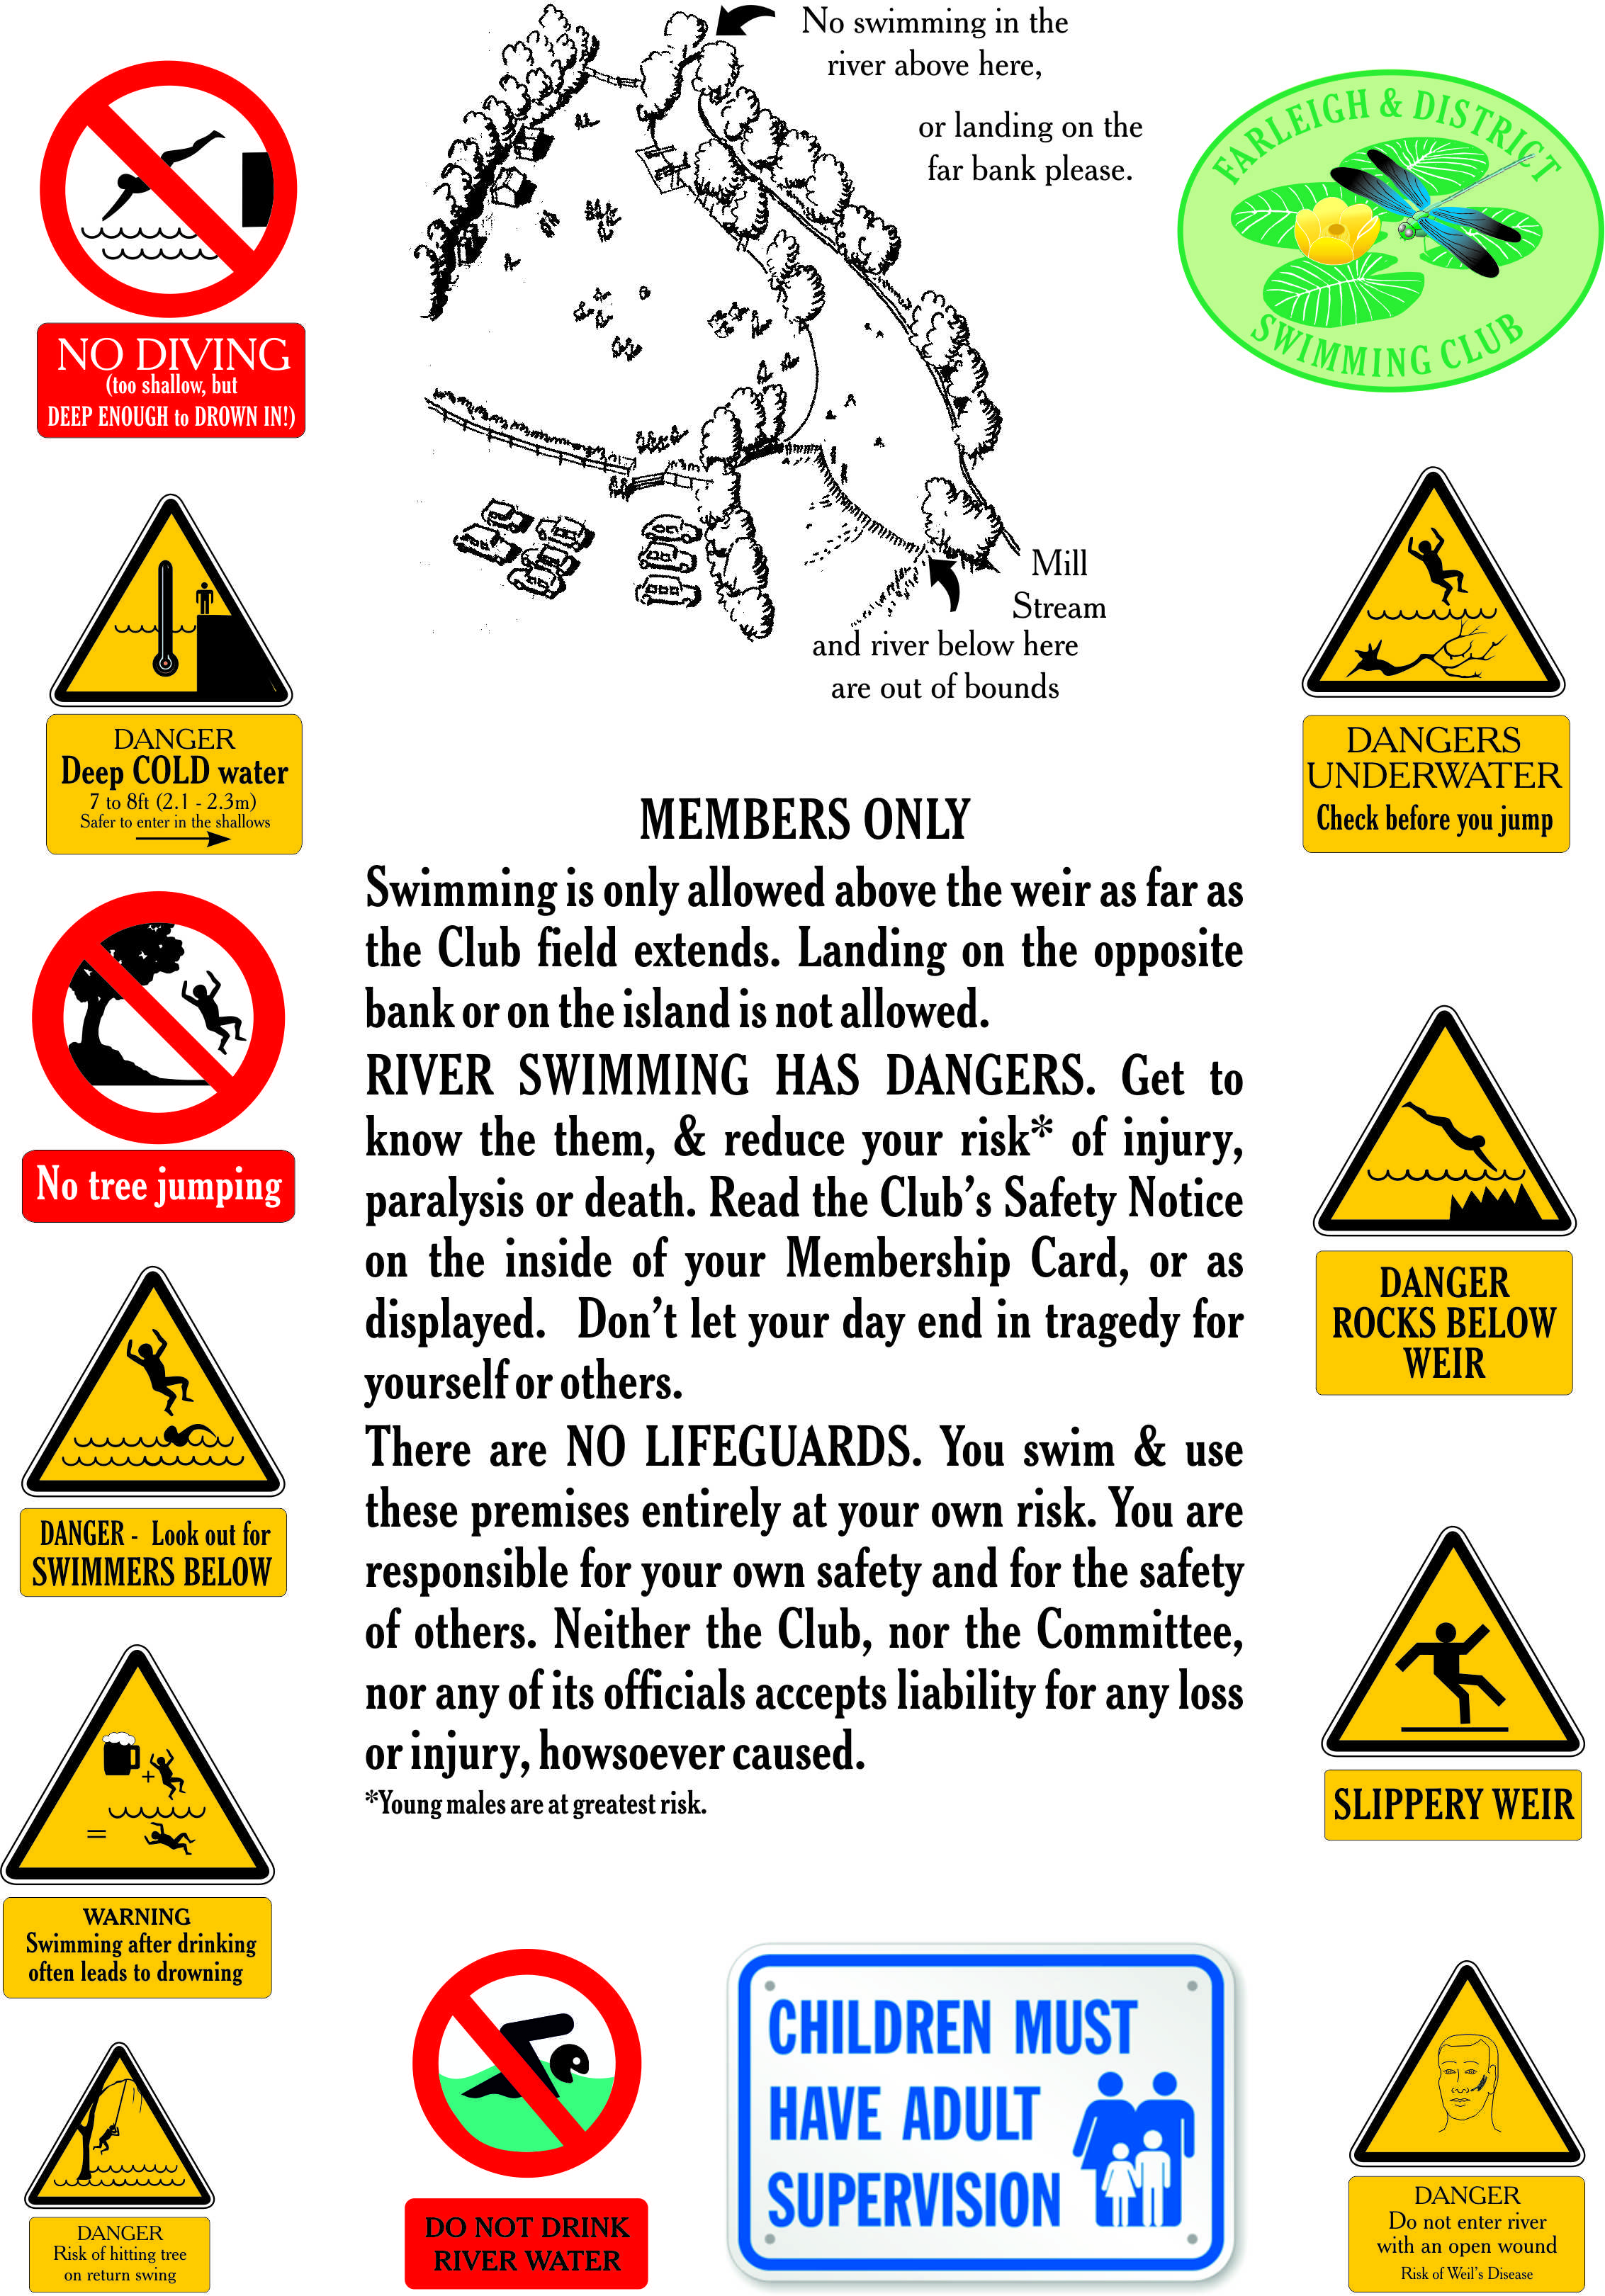 Farleigh & District Swimming Club Safety map